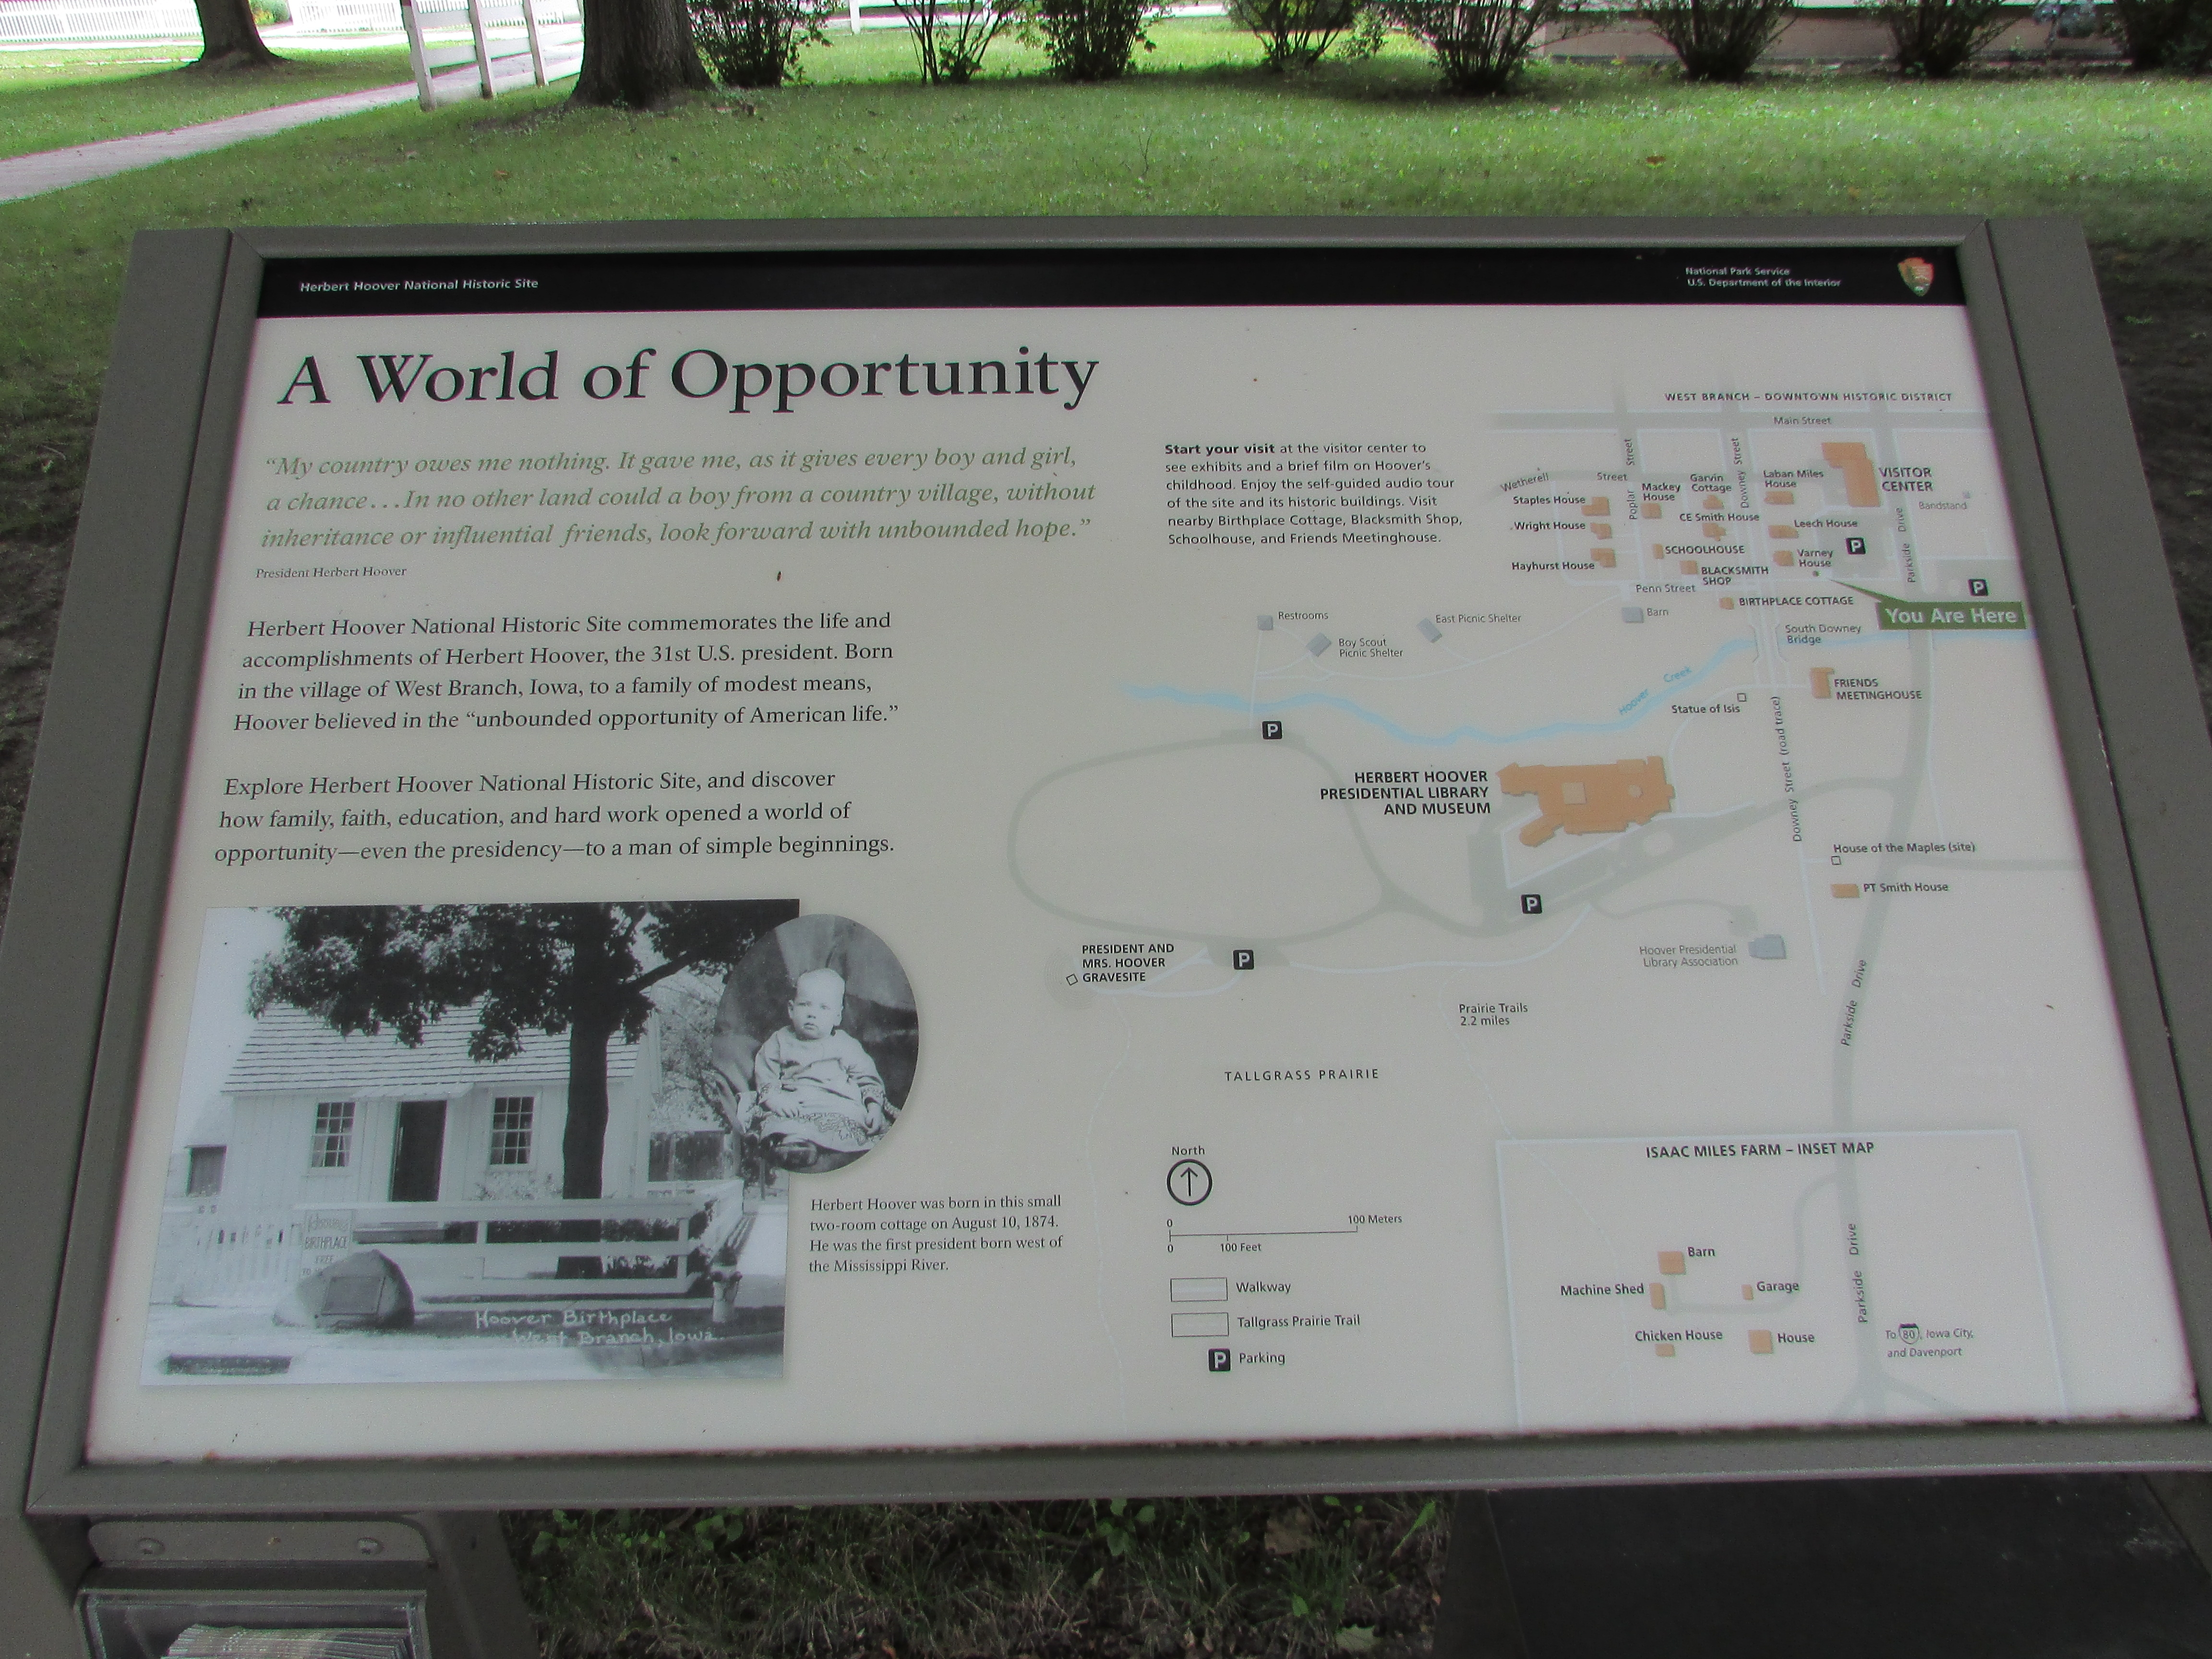 A World of Opportunity Marker